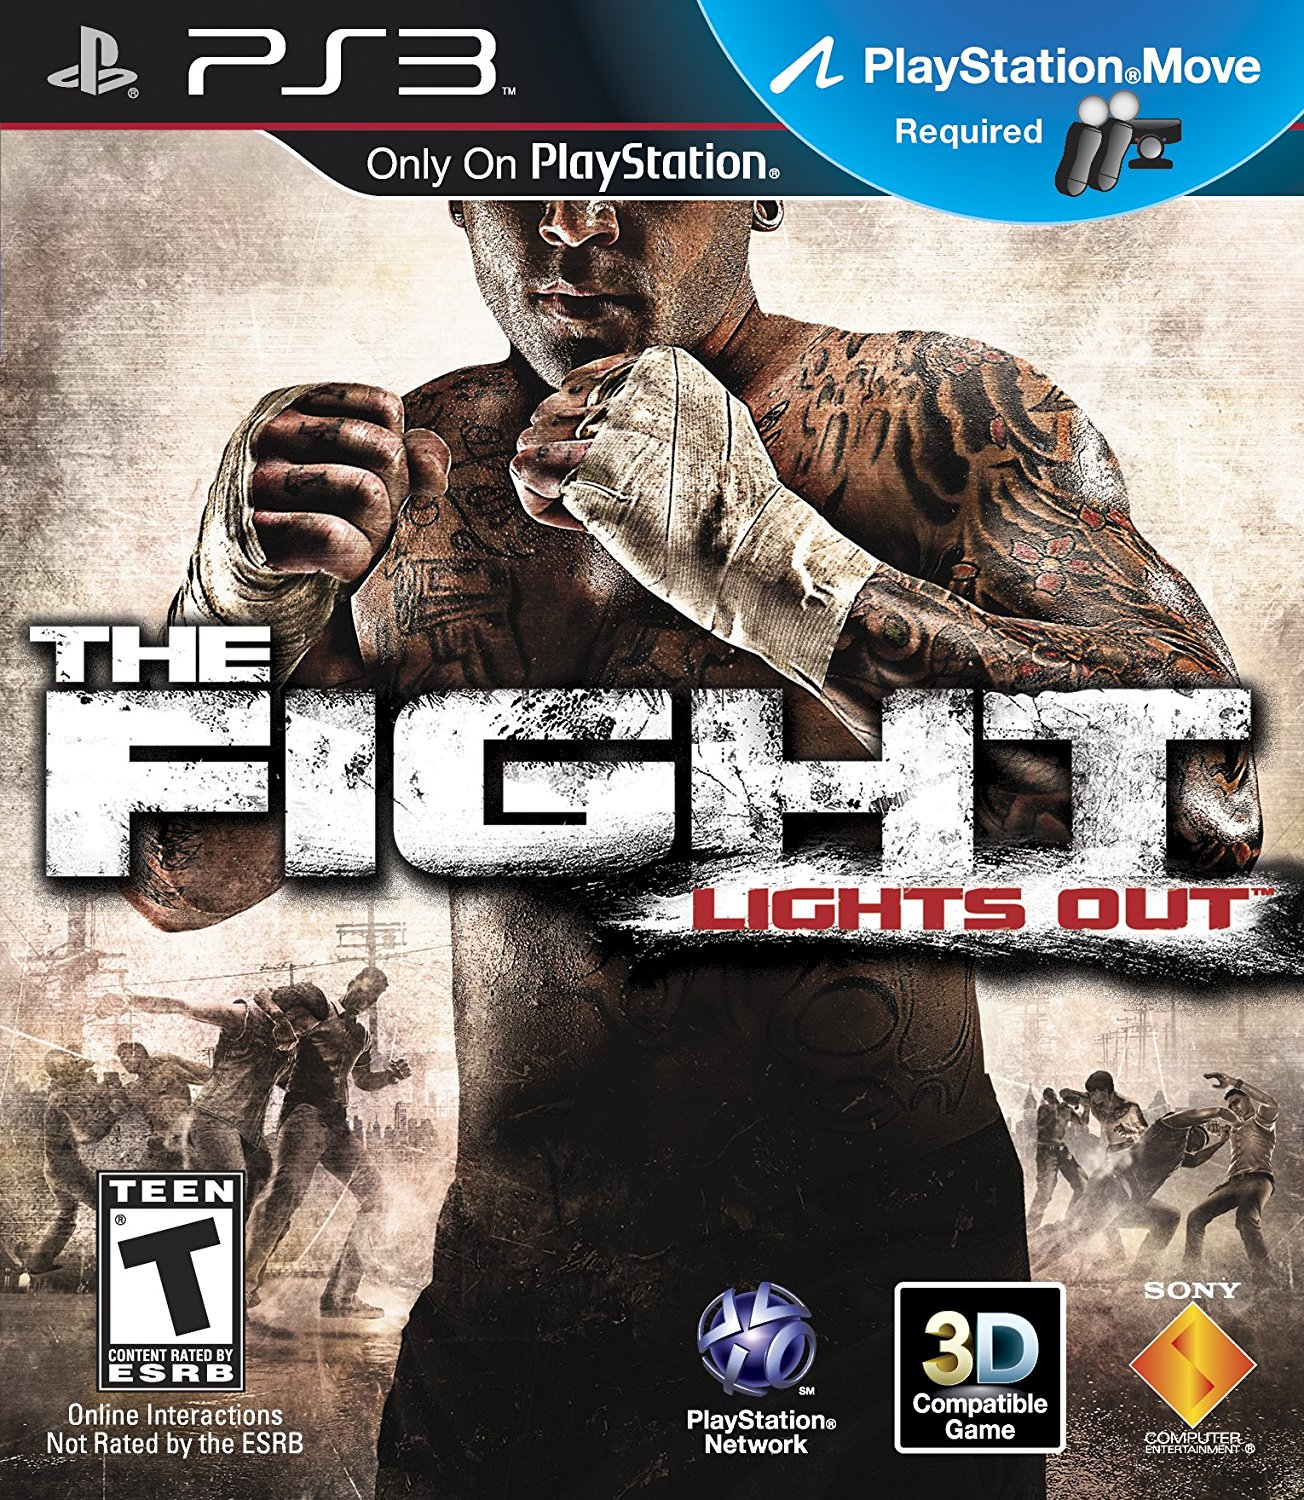 Fight: Lights Out